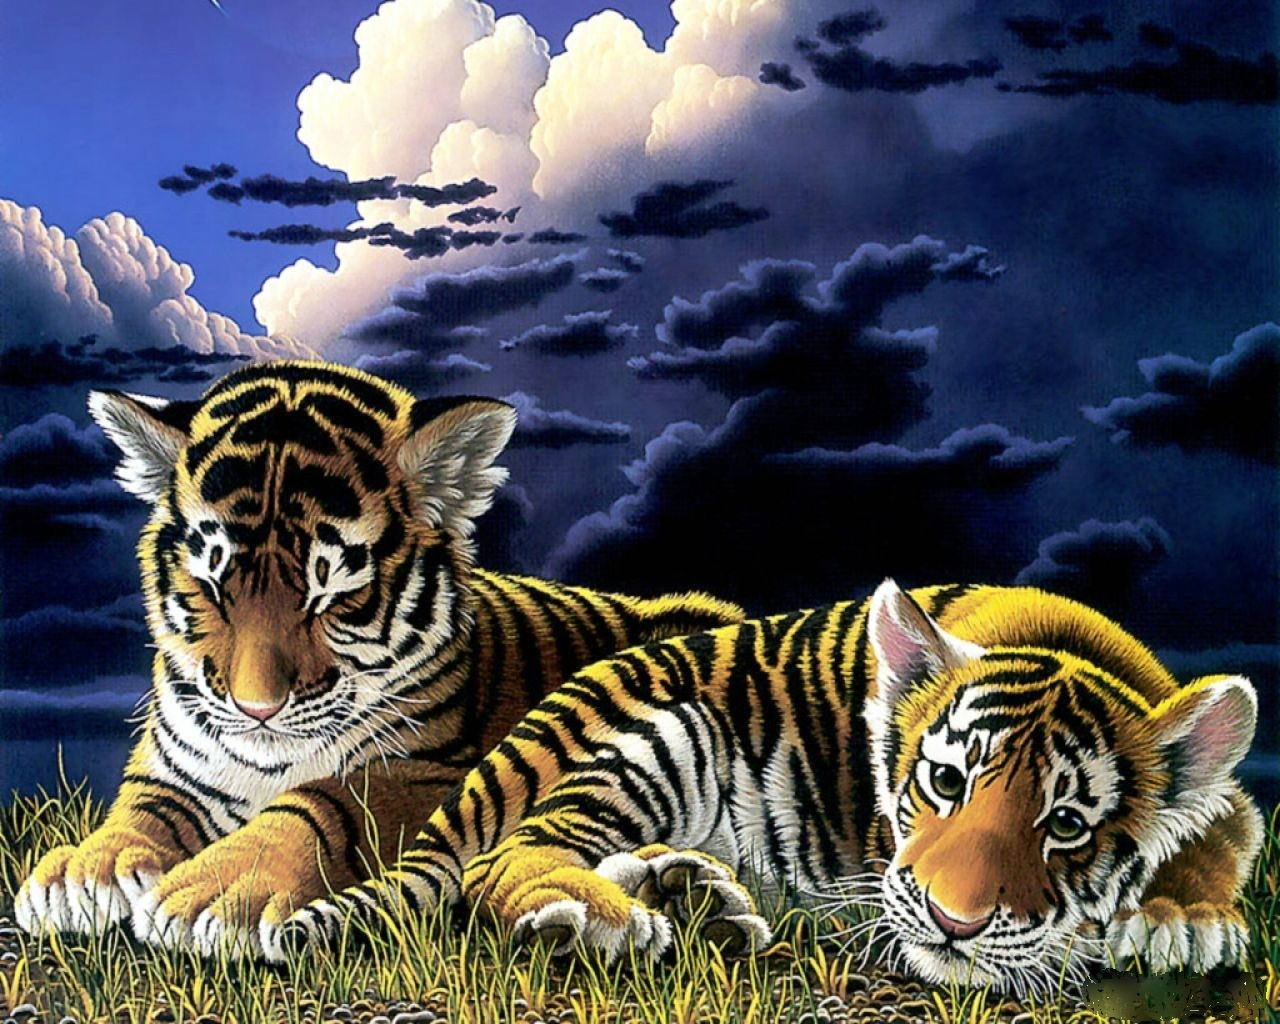 Cute Tiger Cubs Wallpaper